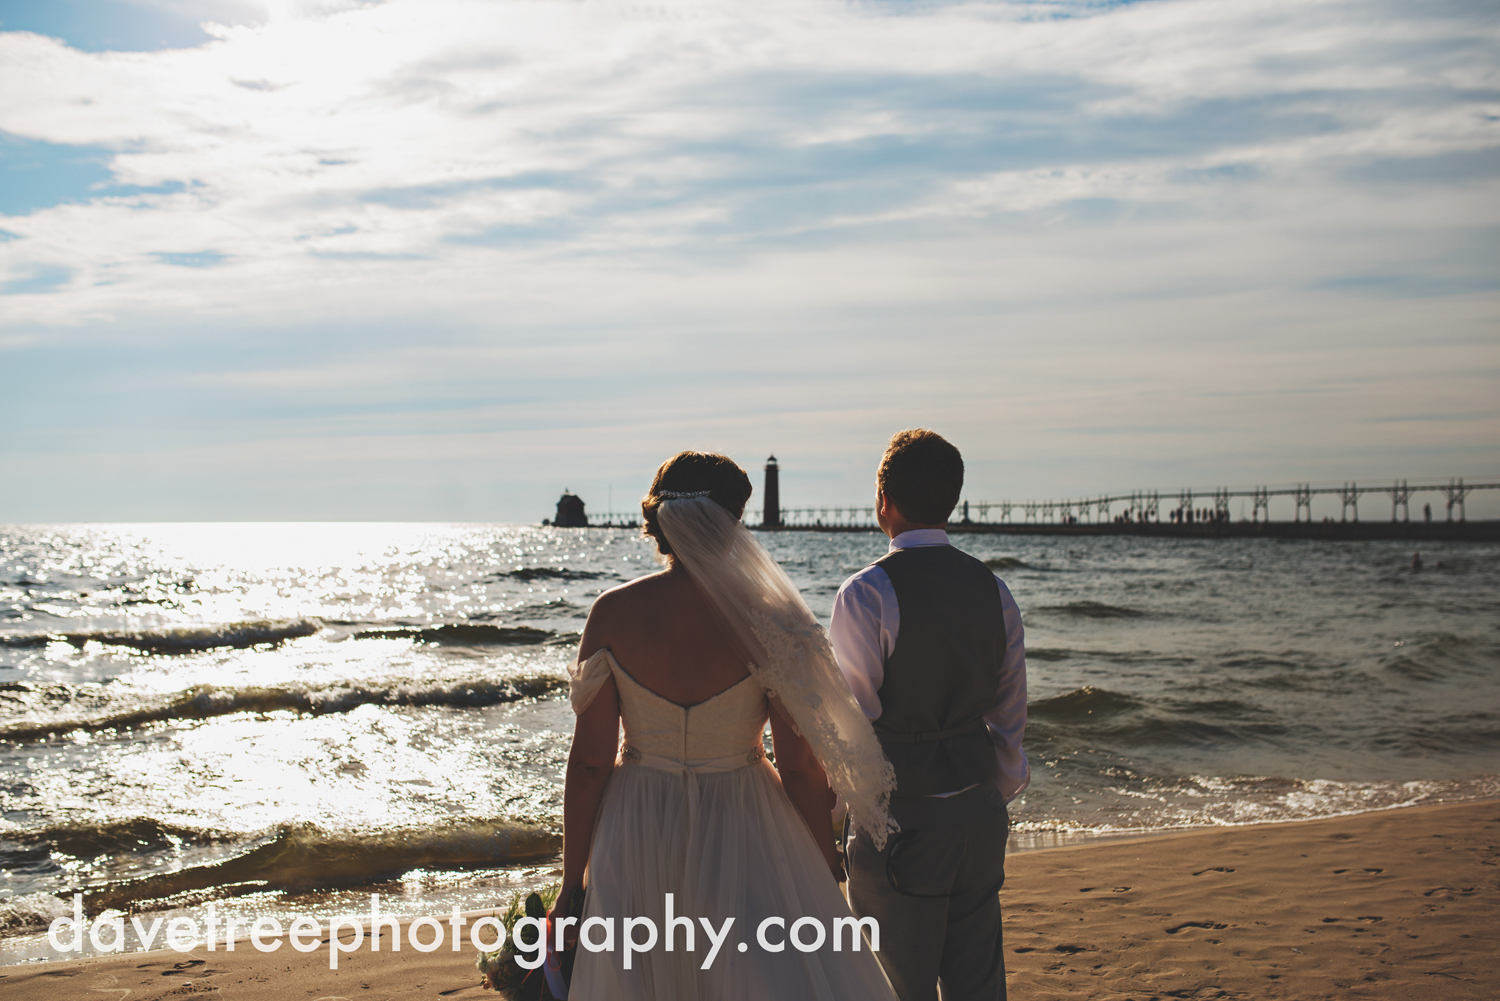 grand_haven_wedding_photographer_weaver_house_wedding_35.jpg